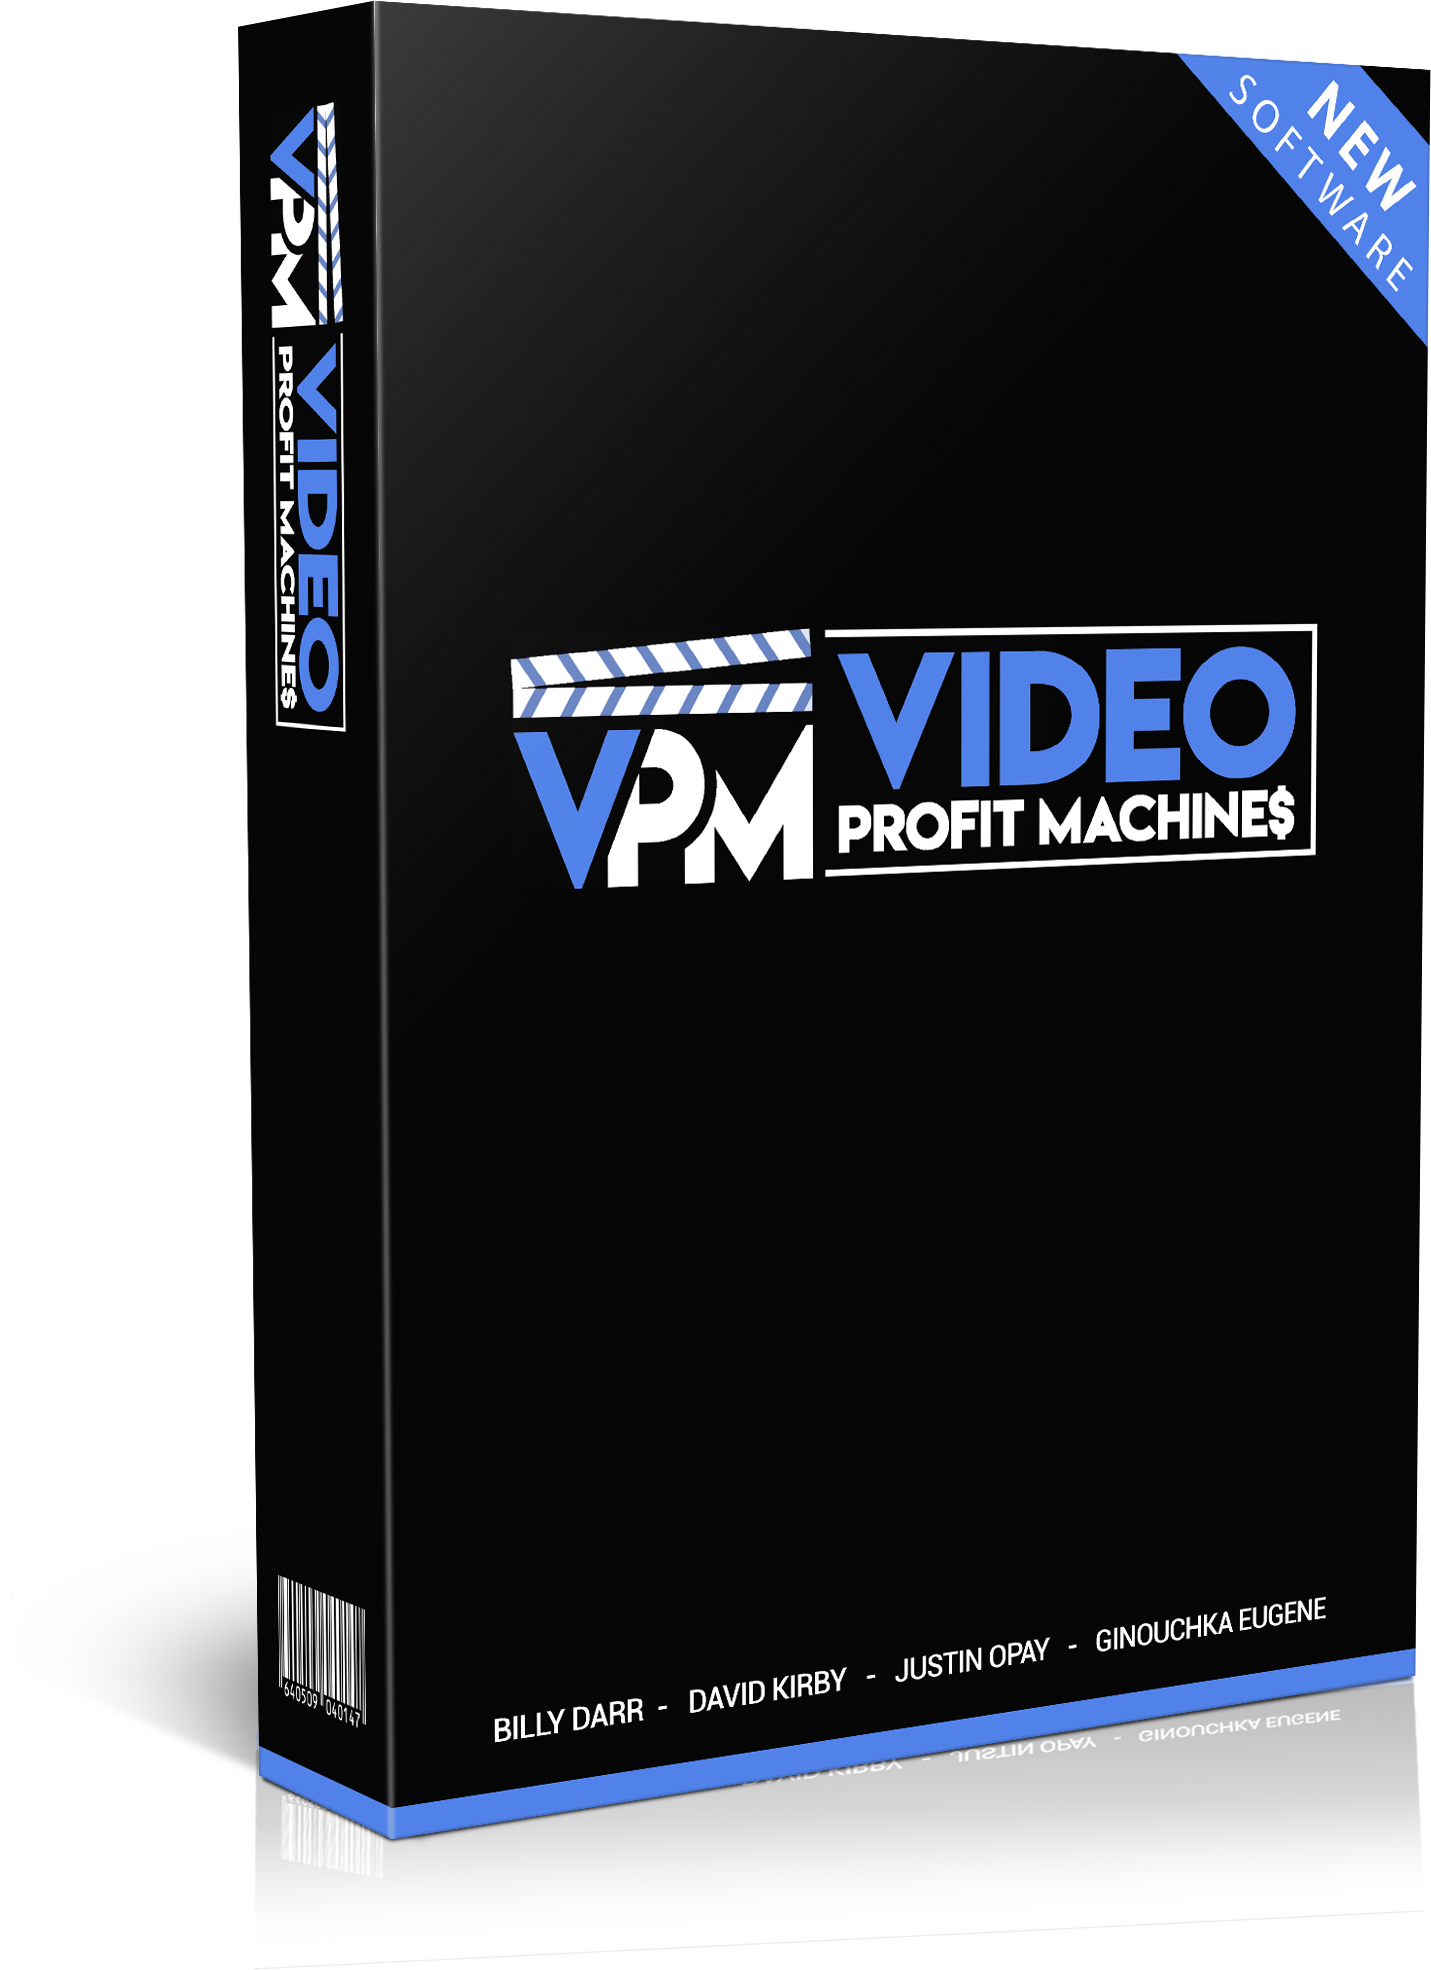 Video Profit Machines Download